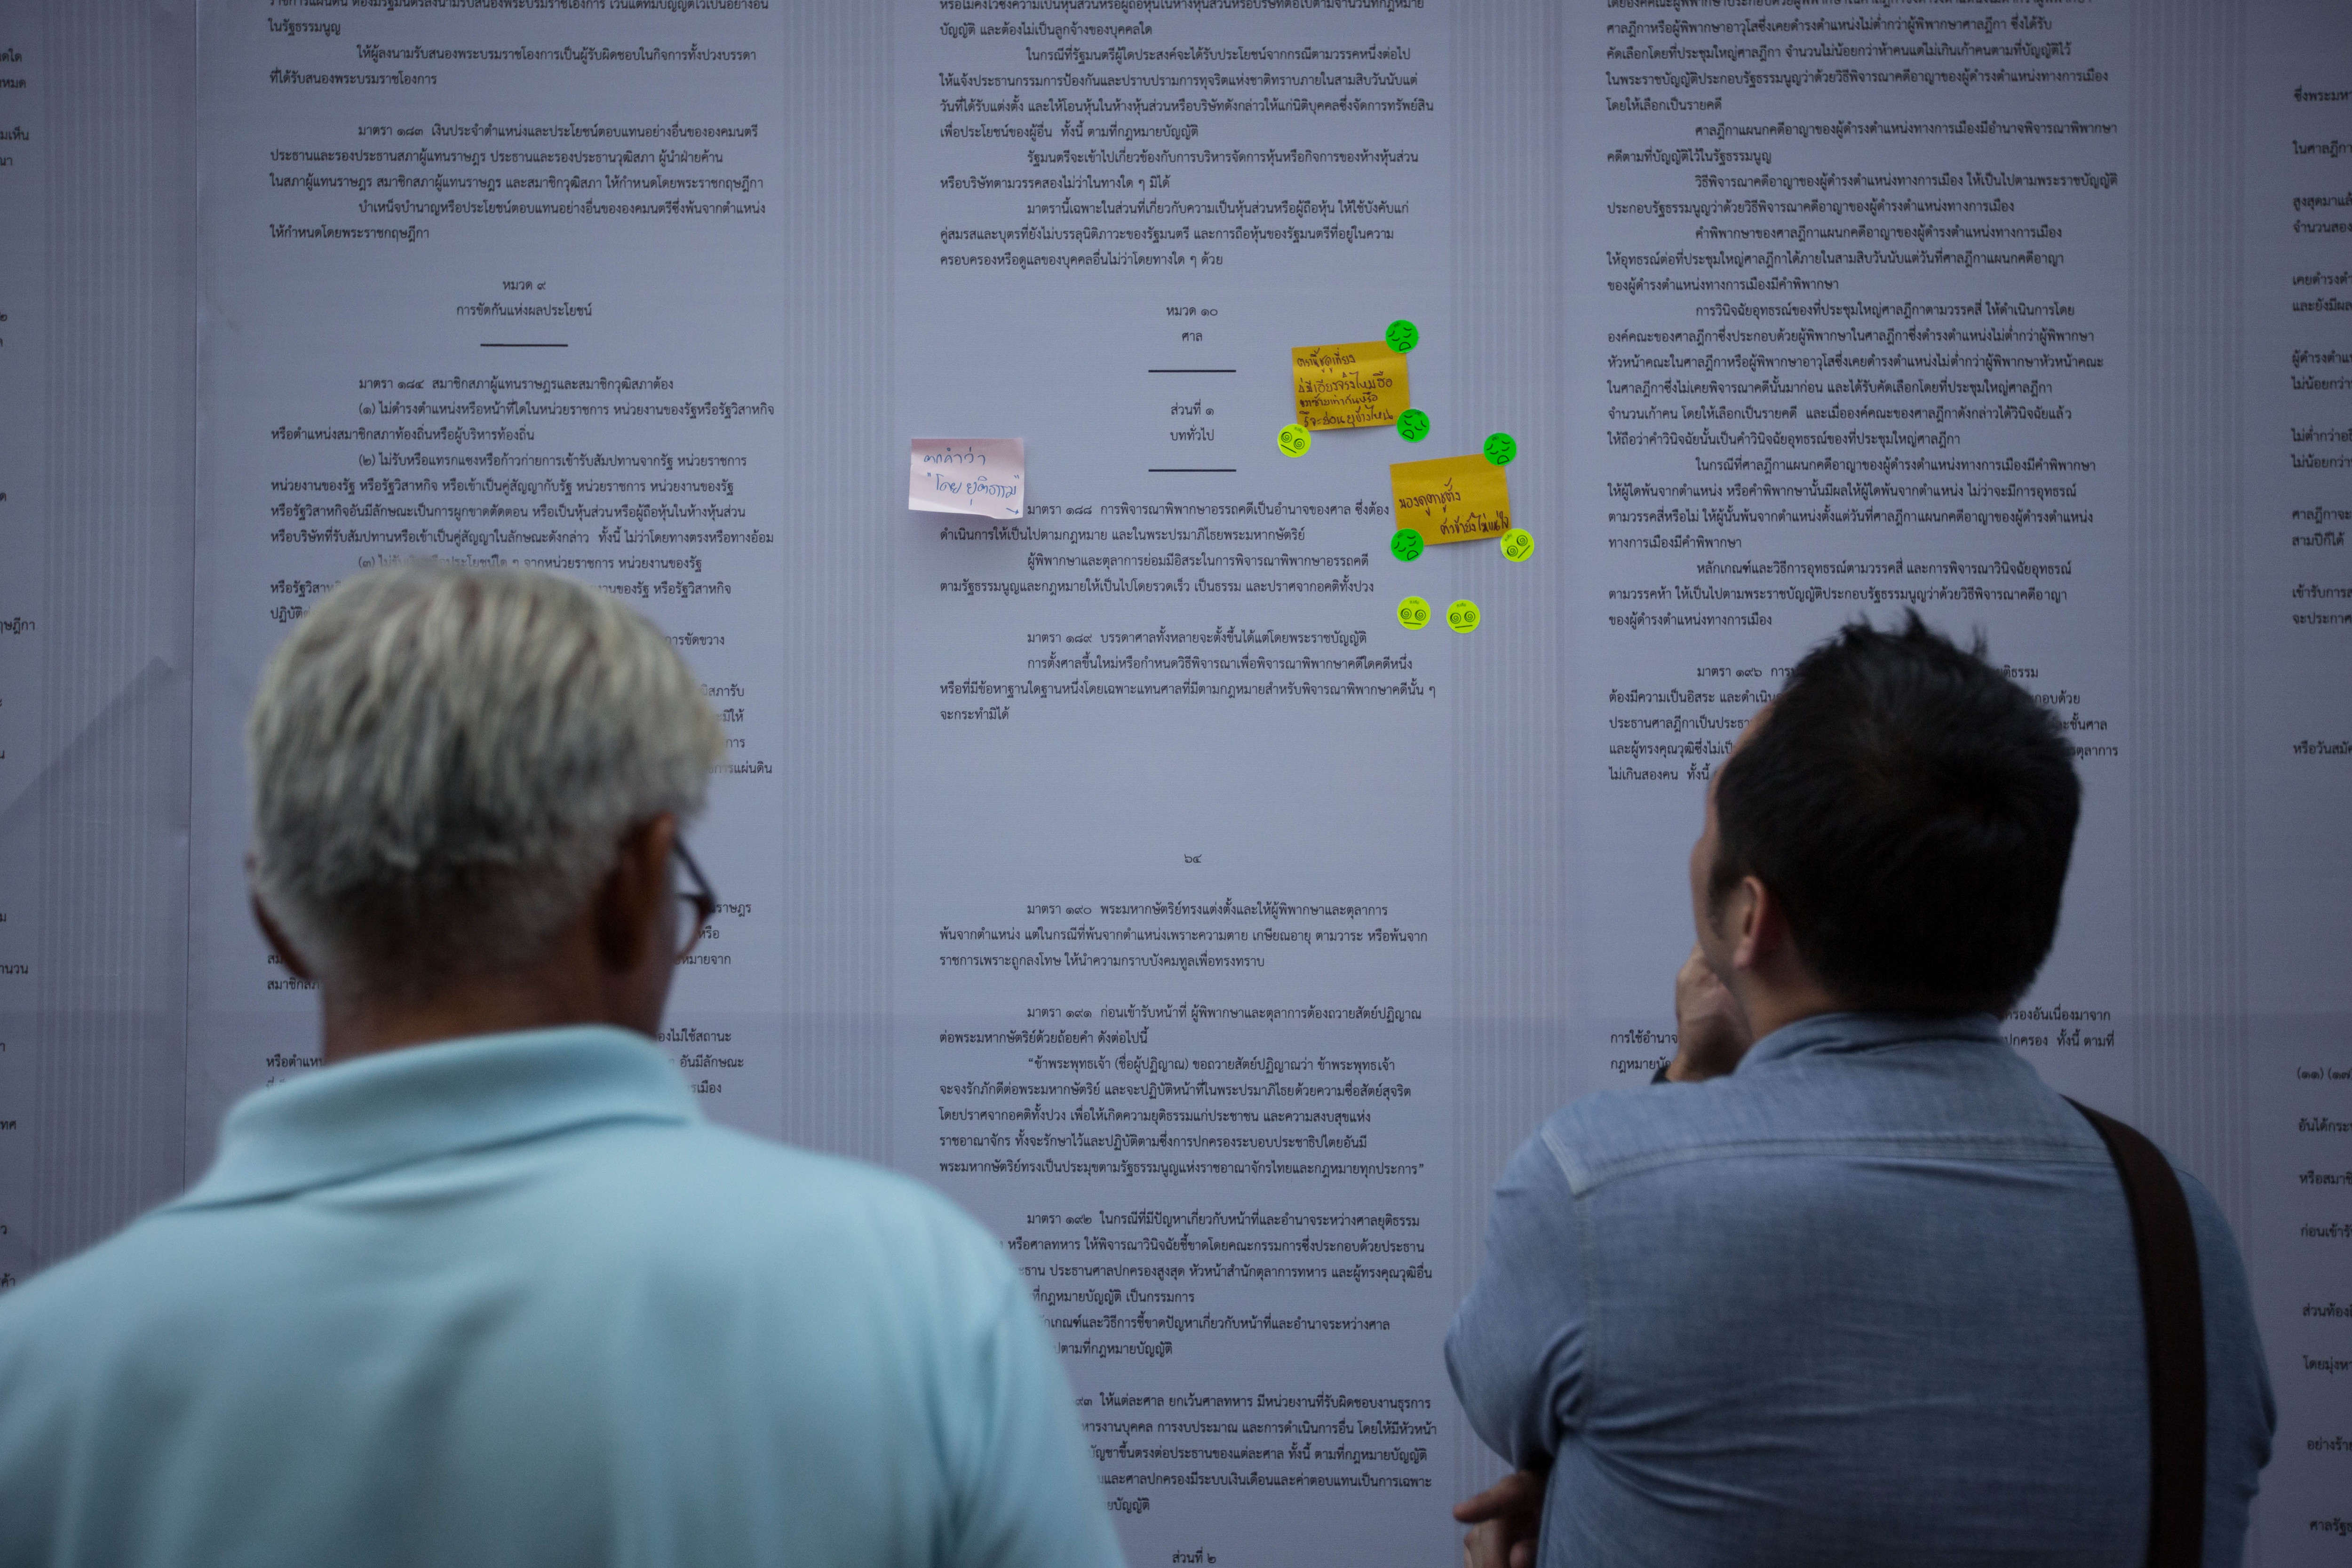 People read the new draft constitution displayed on the wall during the VOTE NO campaign at Thammasat University.